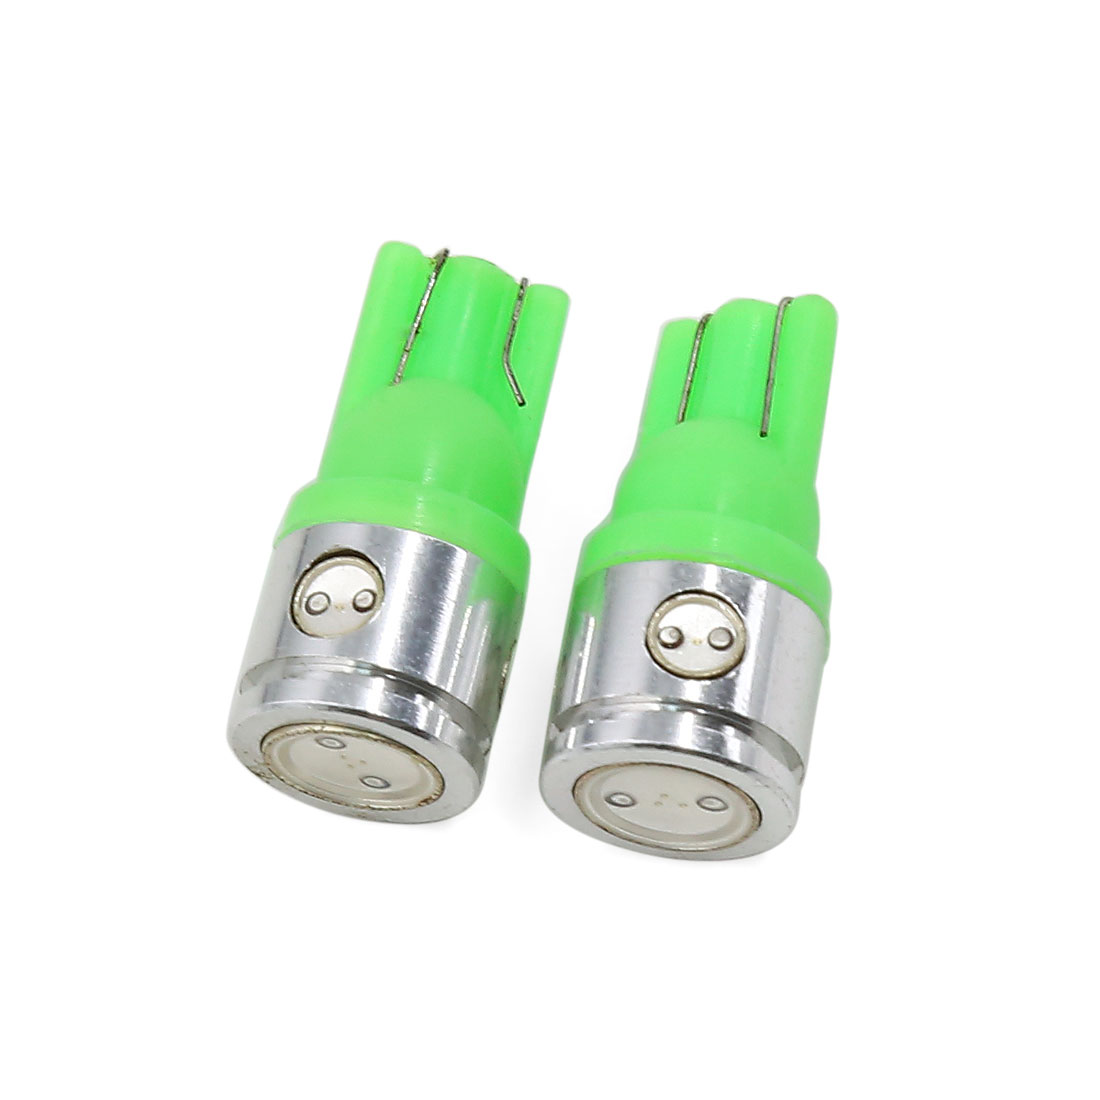 2 Pcs T10 Green LED Bulbs Auto Car Instrument Panel Wedge Light 2.5W Interior